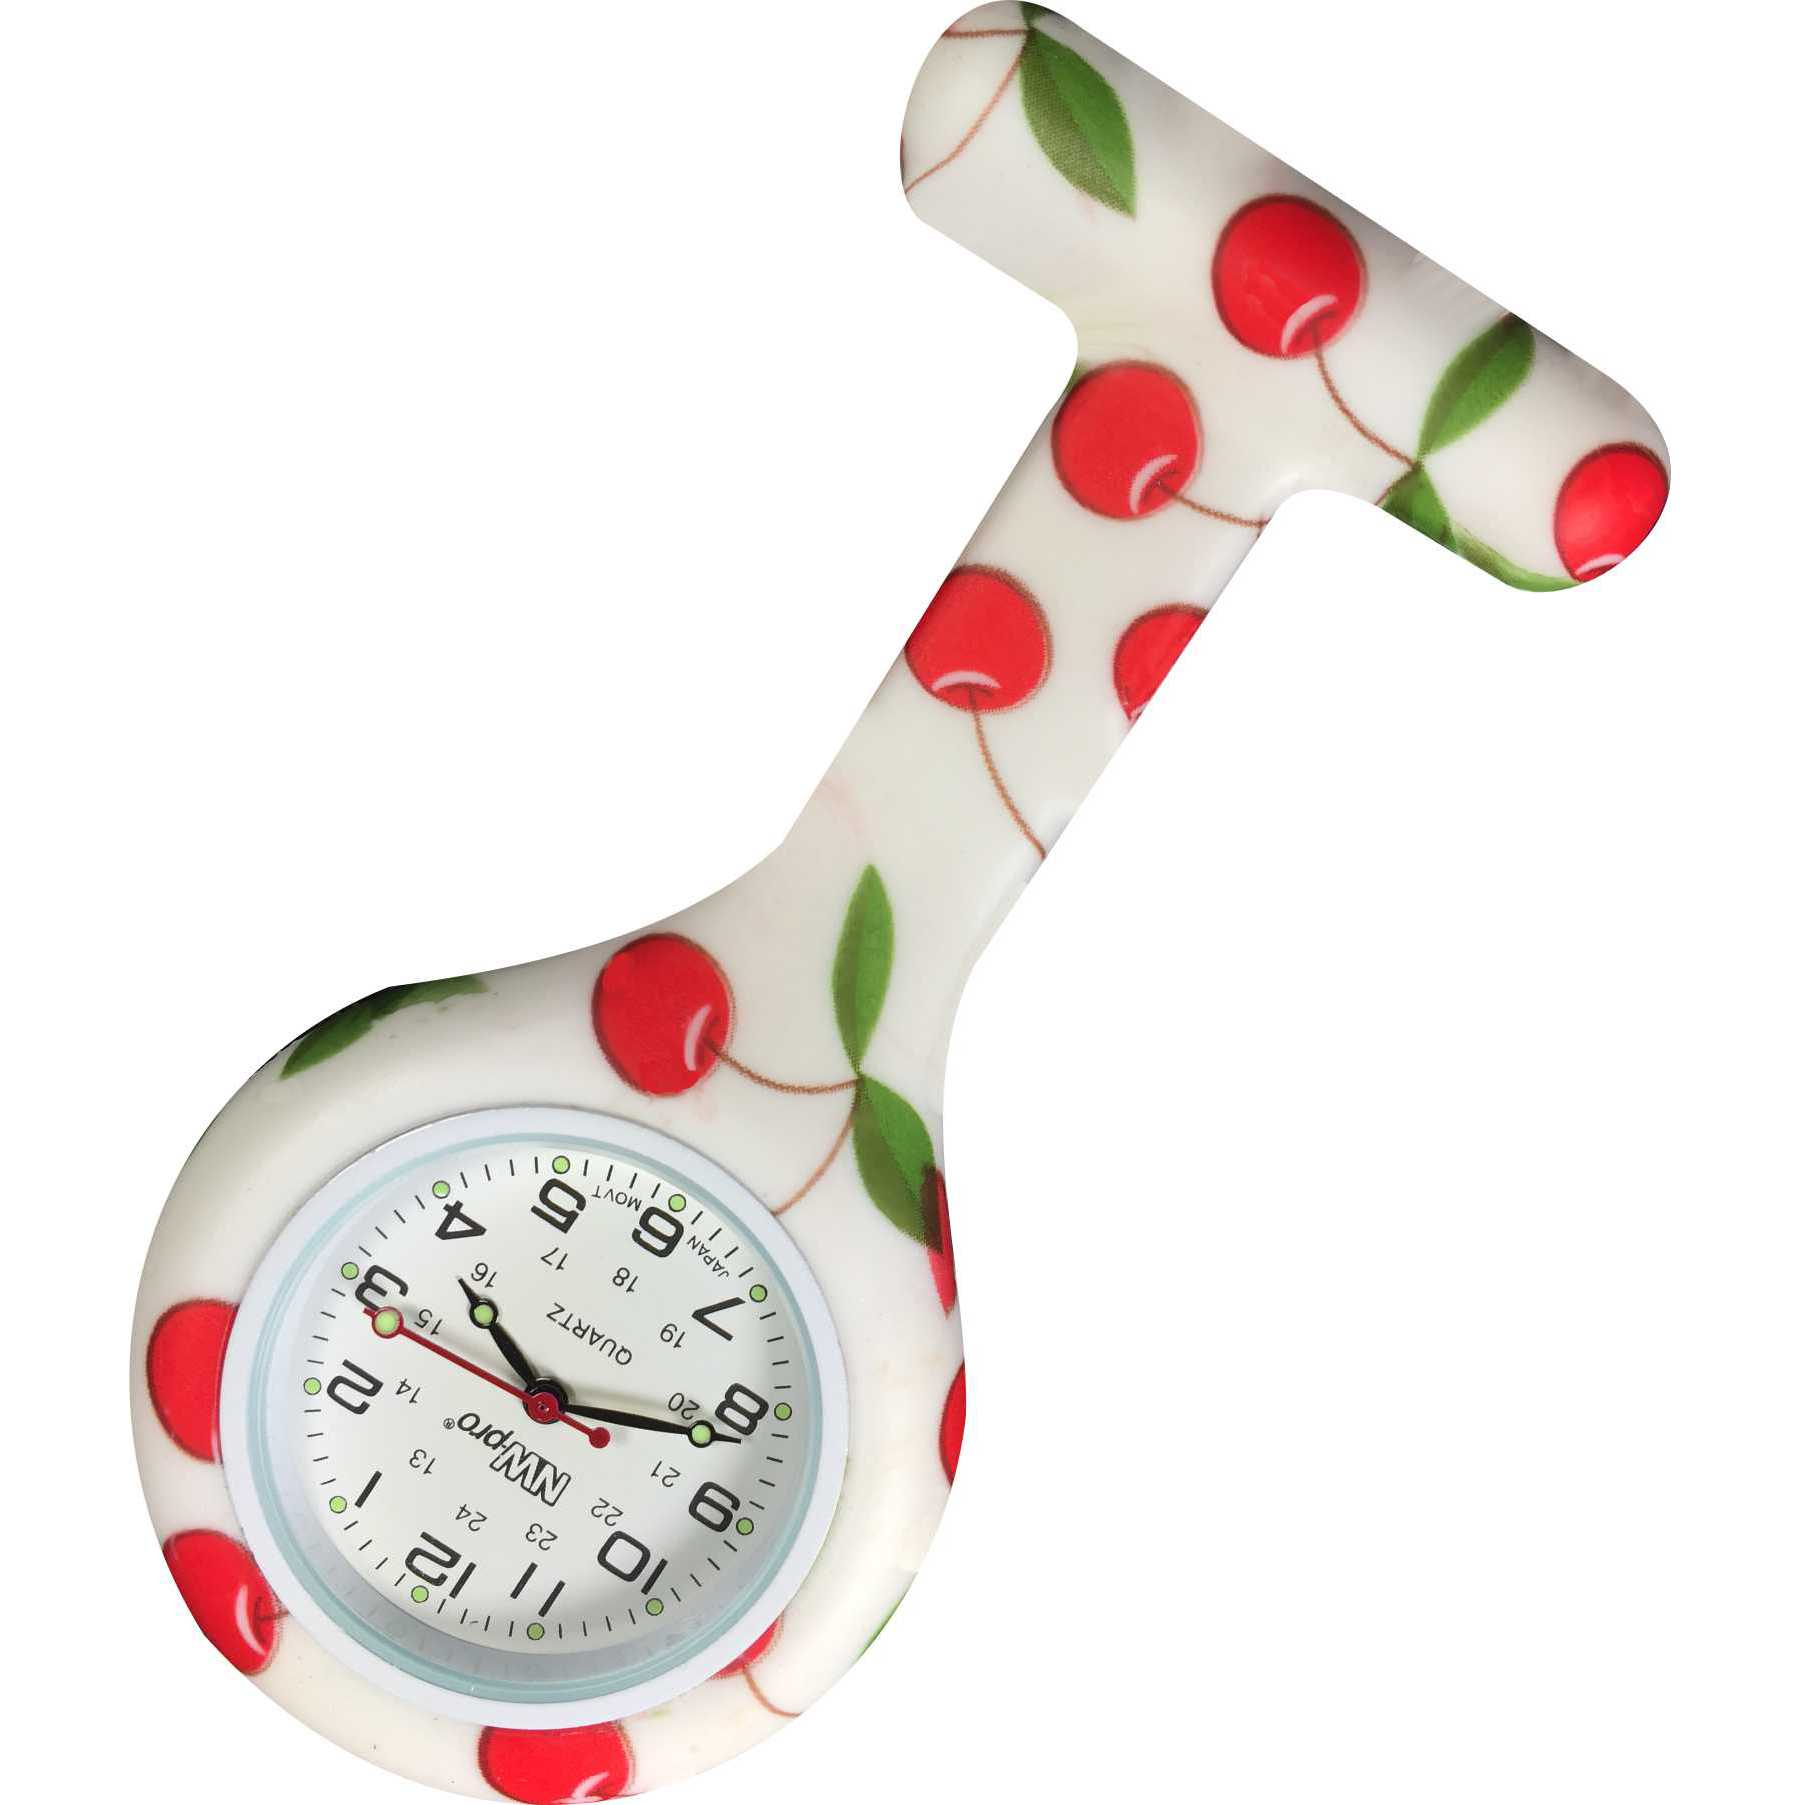 Nurse Pin Watch Silicone Printed Cherry